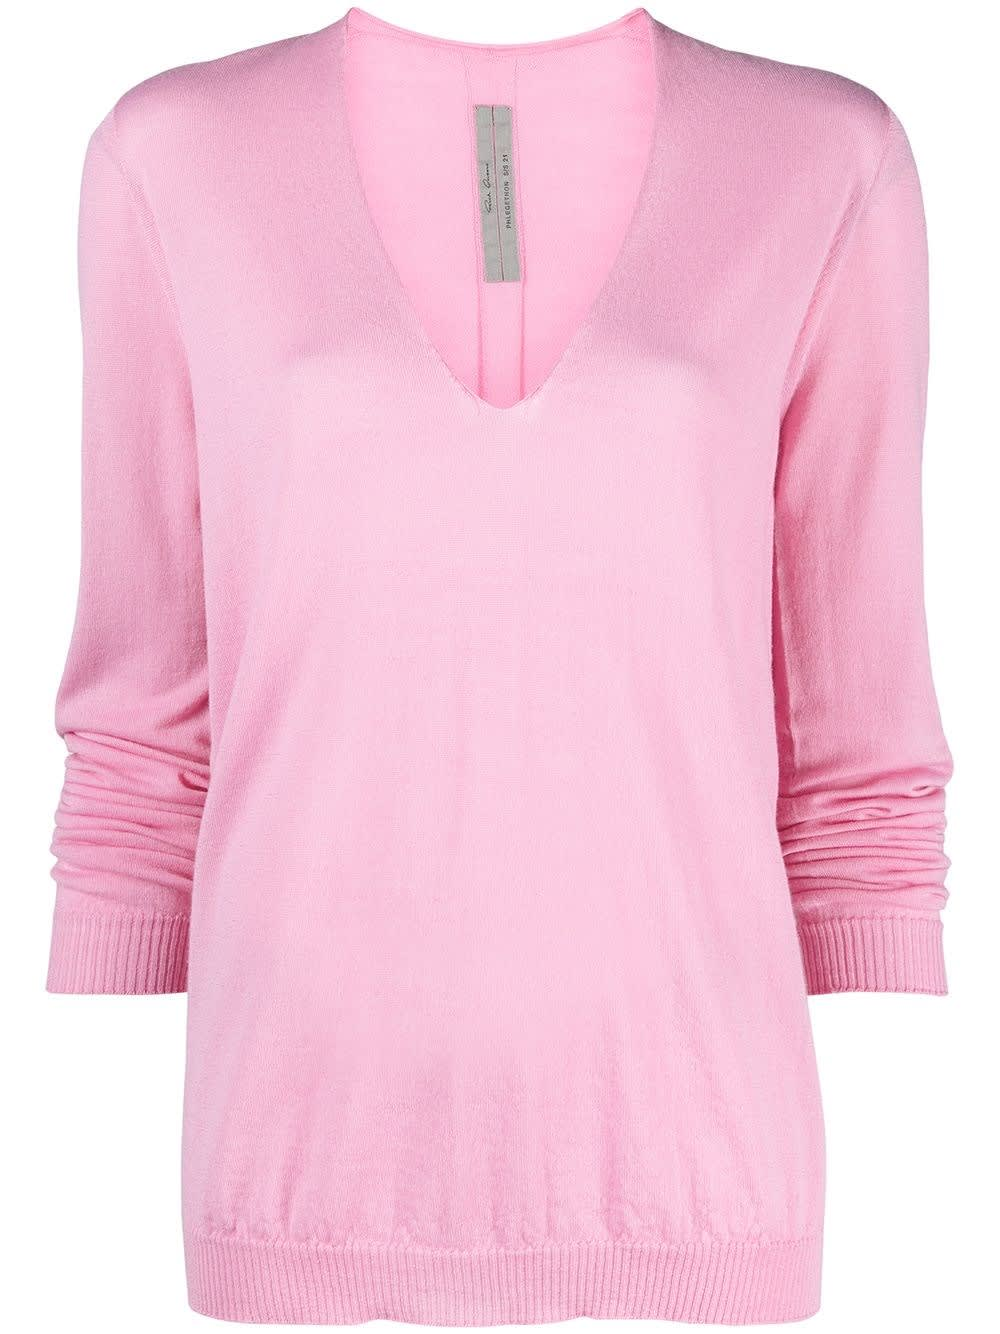 Rick Owens Tops PINK V-NECK WOOL SWEATER